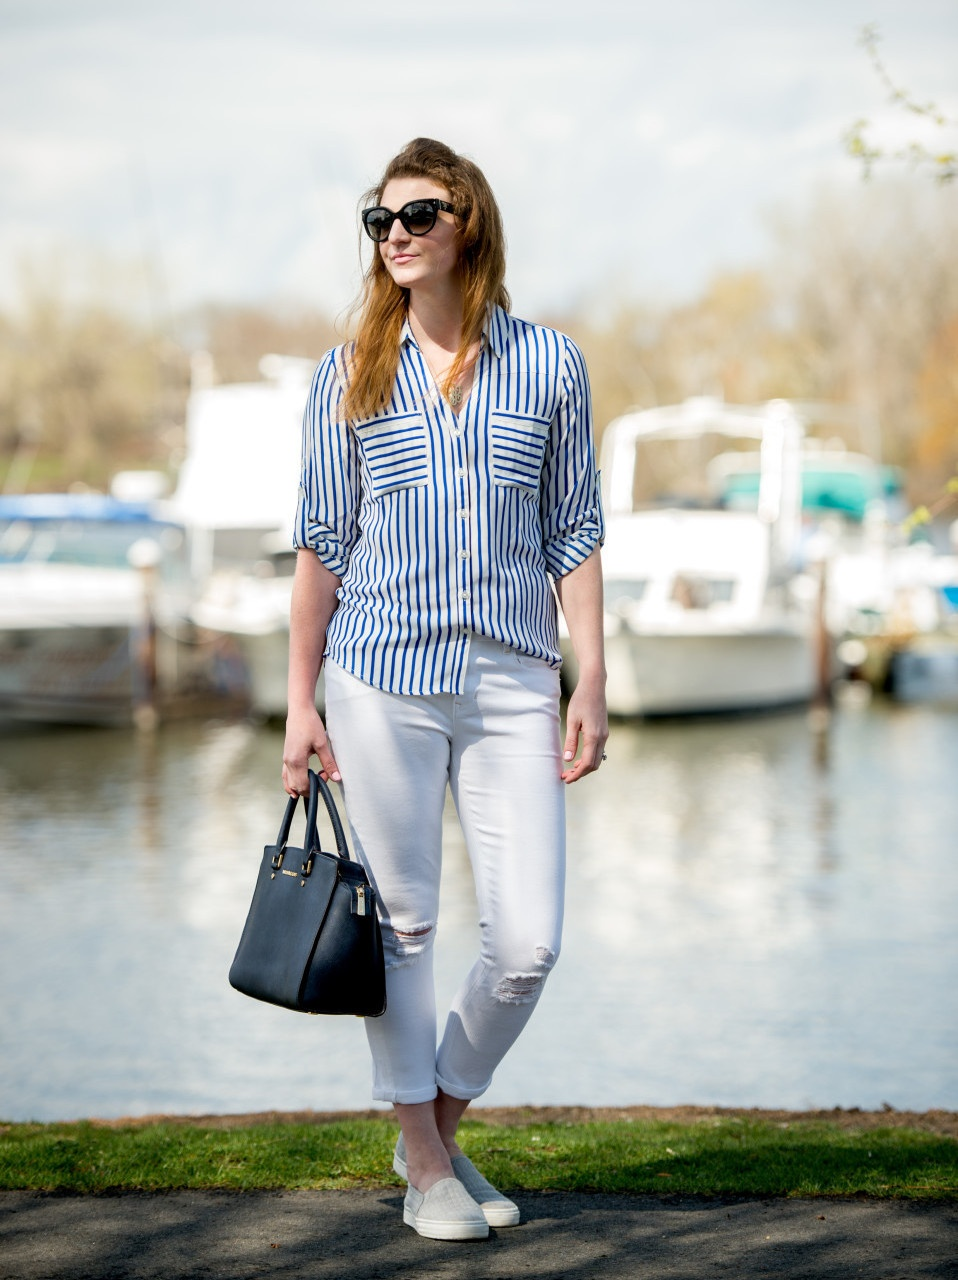 blue and white stripes, white pants About popular Boston lifestyle and mom blogger, Feathers & Stripes